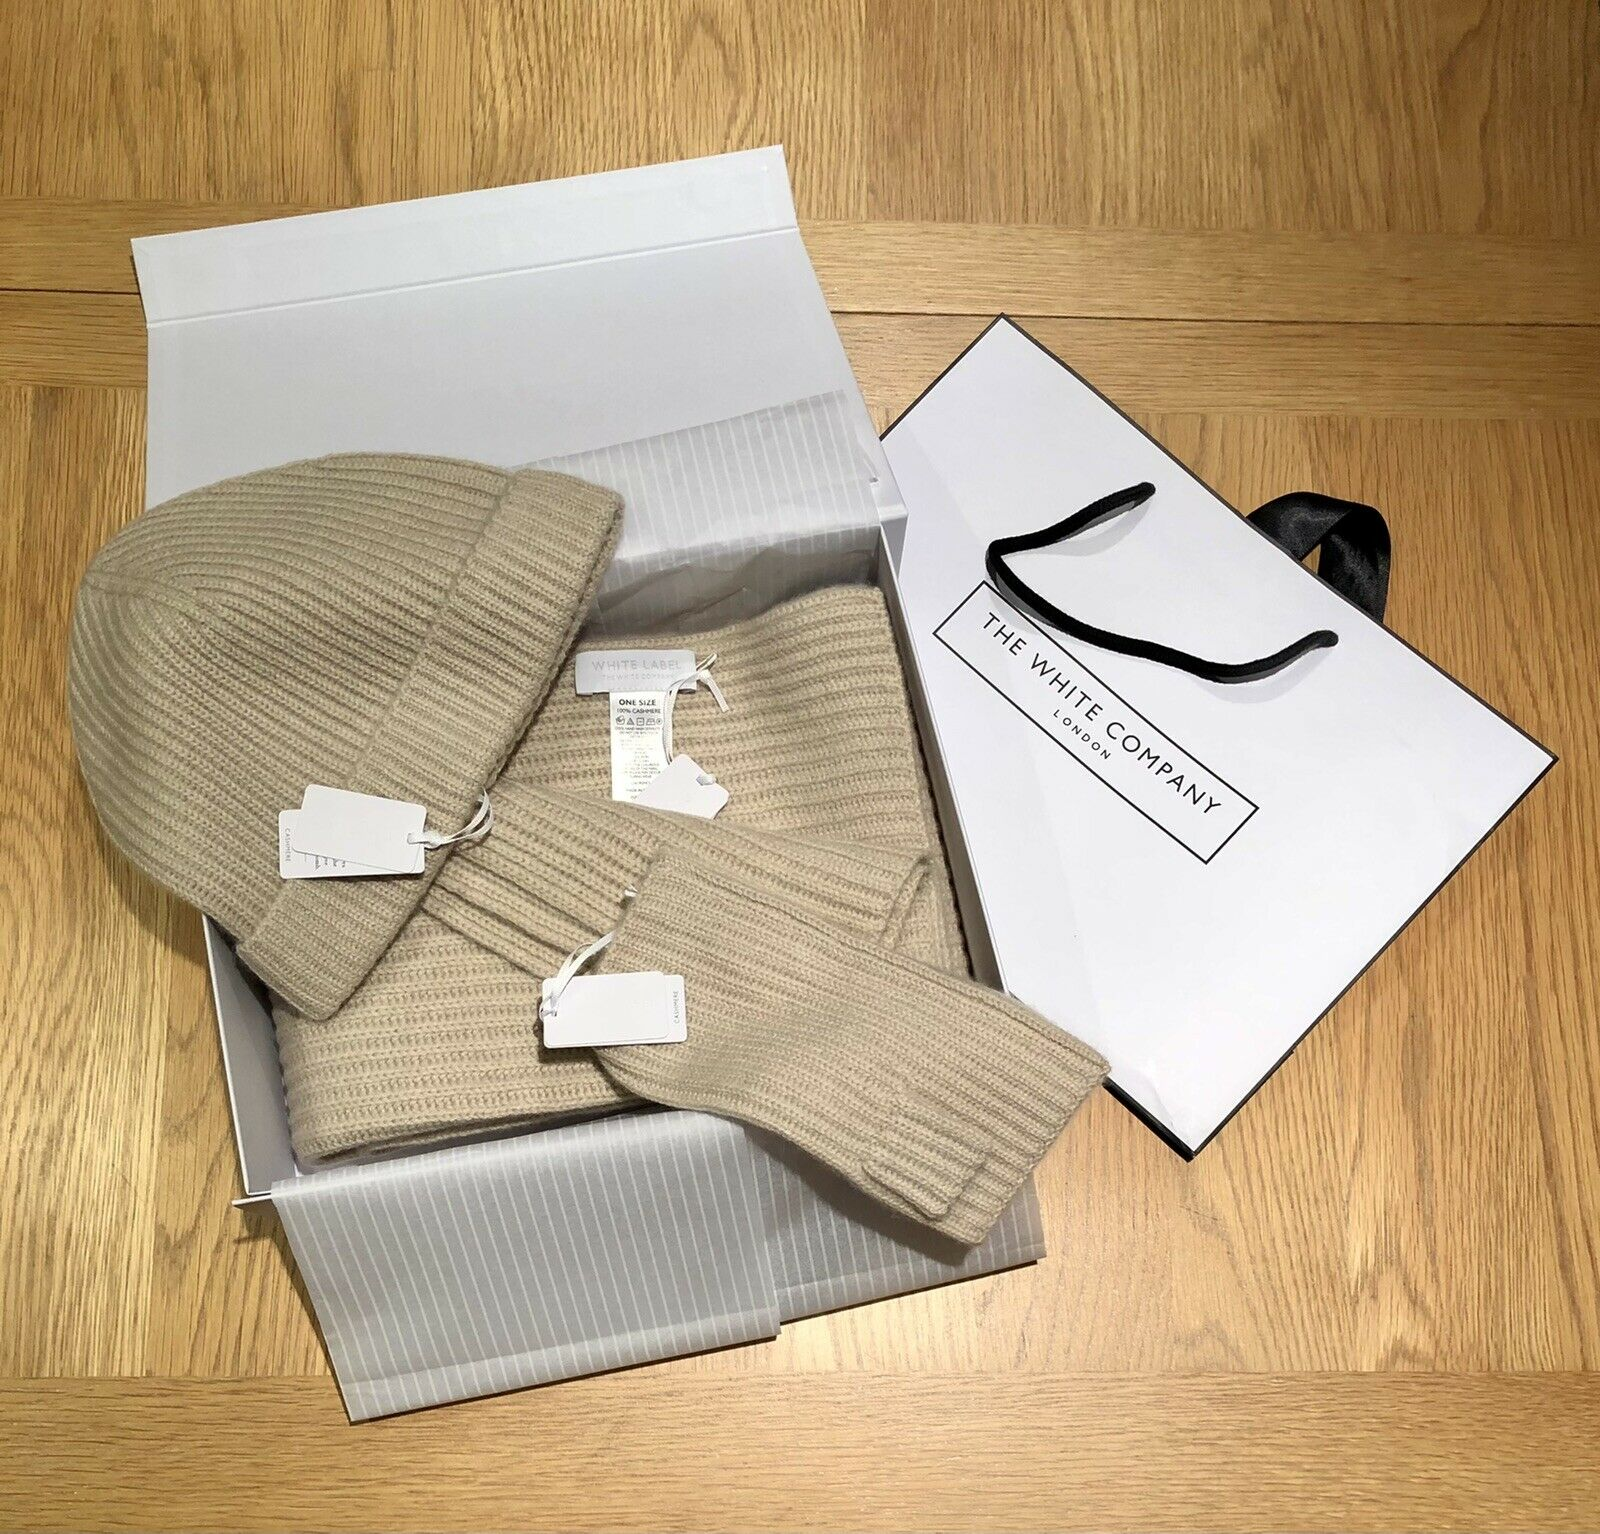 The White Company Cashmere Ribbed Scarf, Hat & Wrist Warmers Gift Set, RRP